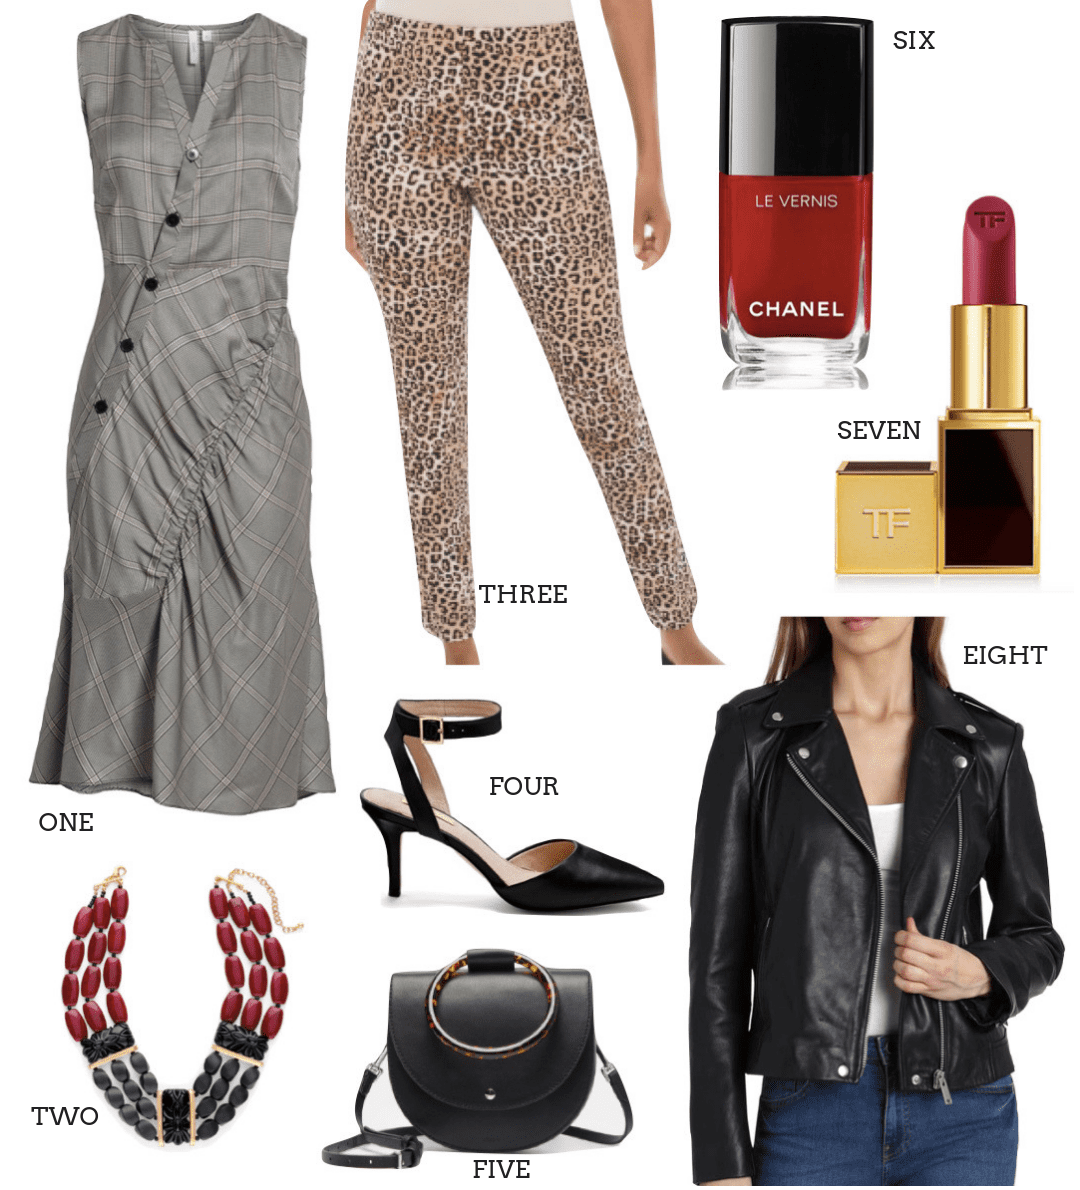 How to Transition Your Wardrobe Into Fall Looks